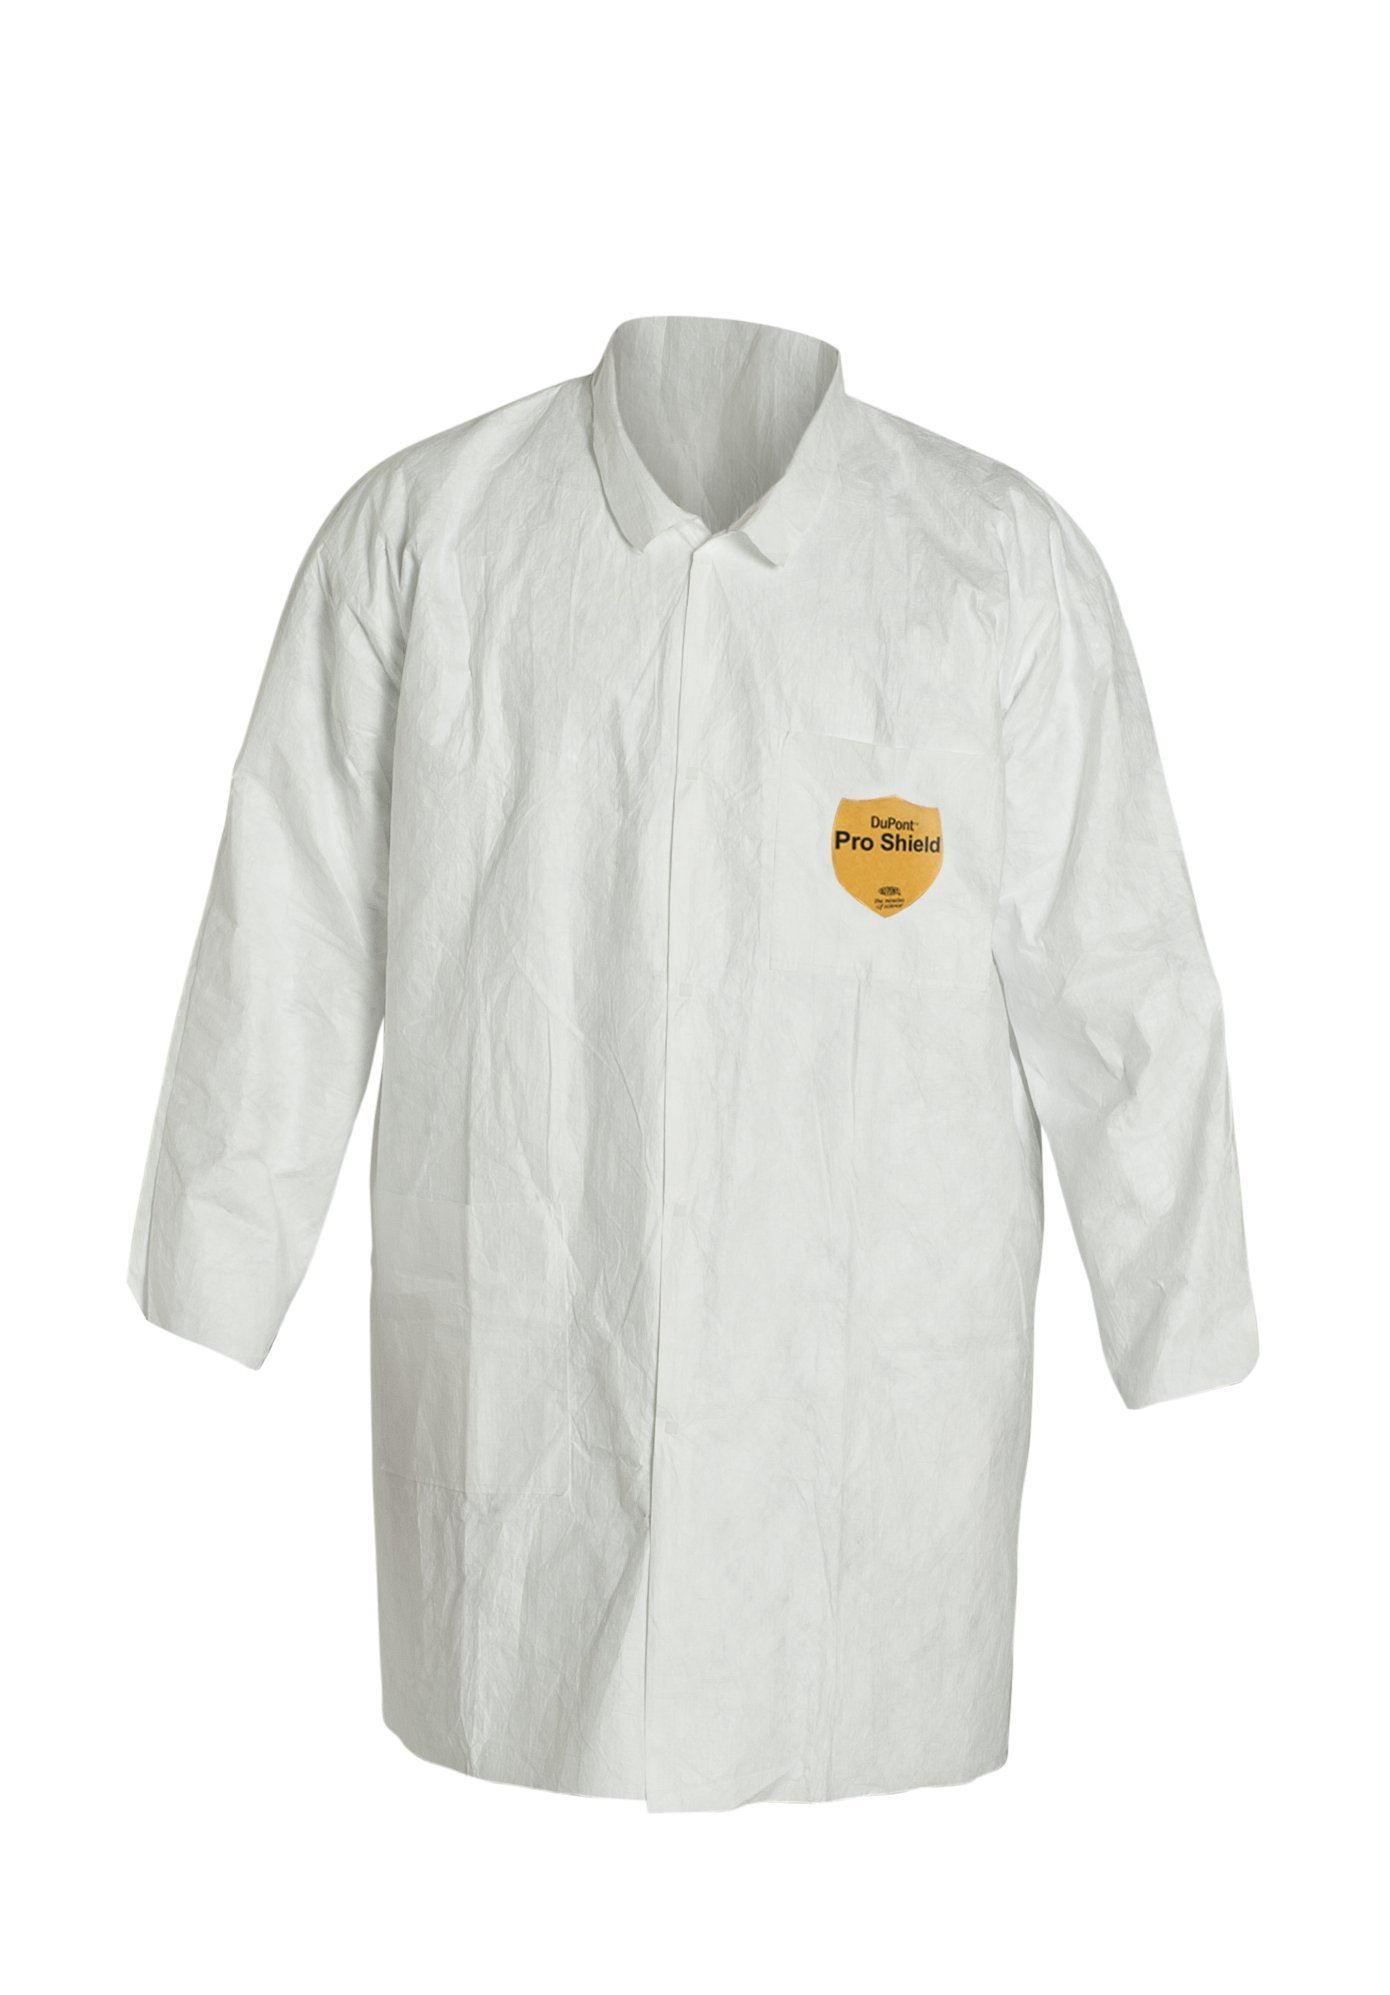 DuPont Tyvek 400 TY212S Disposable Lab Coat with Open Cuff, White, Large (Pack of 30)